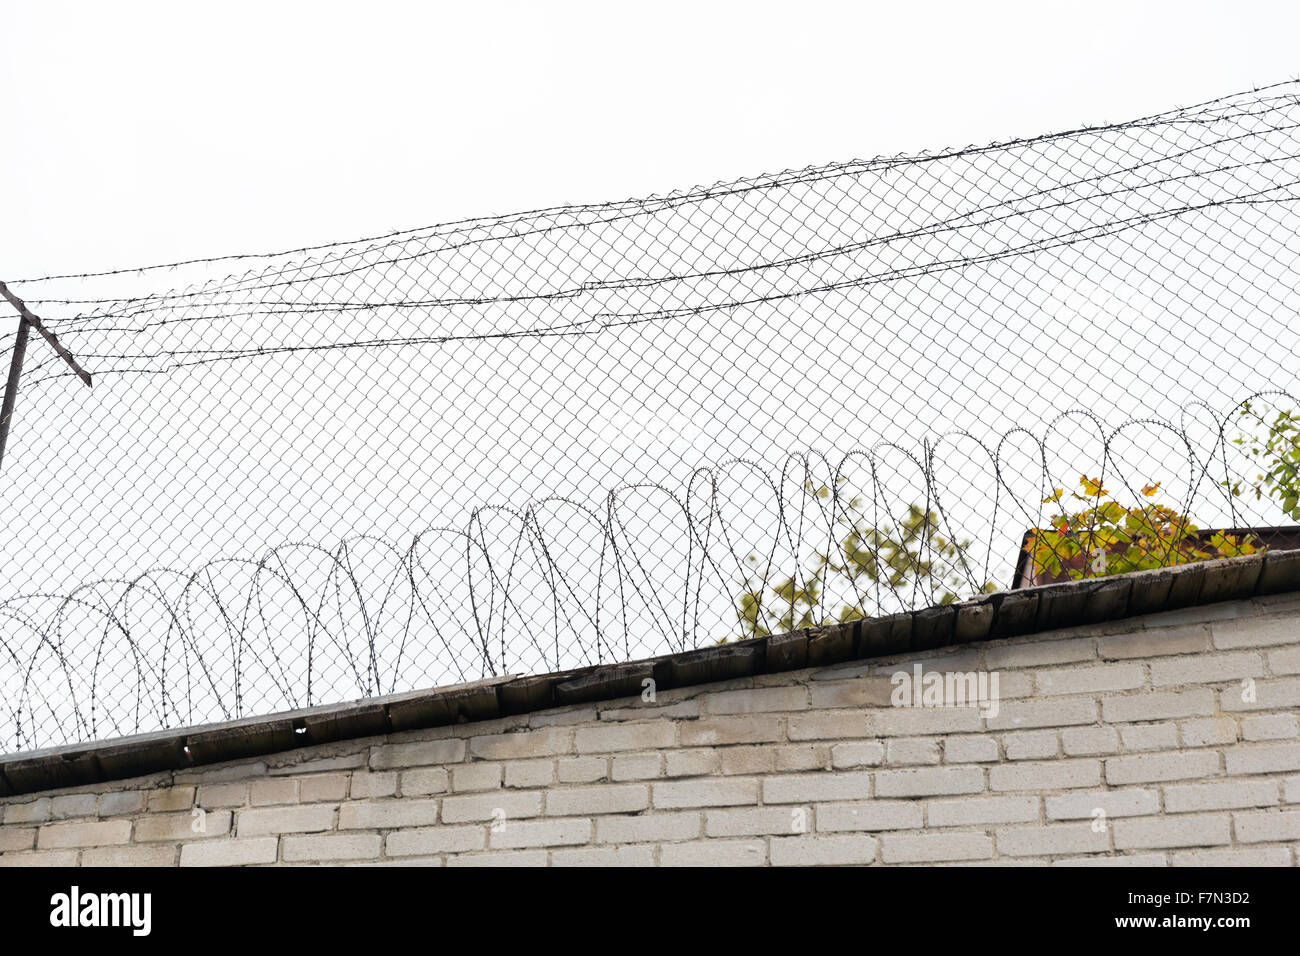 barb wire fence over gray sky Stock Photo